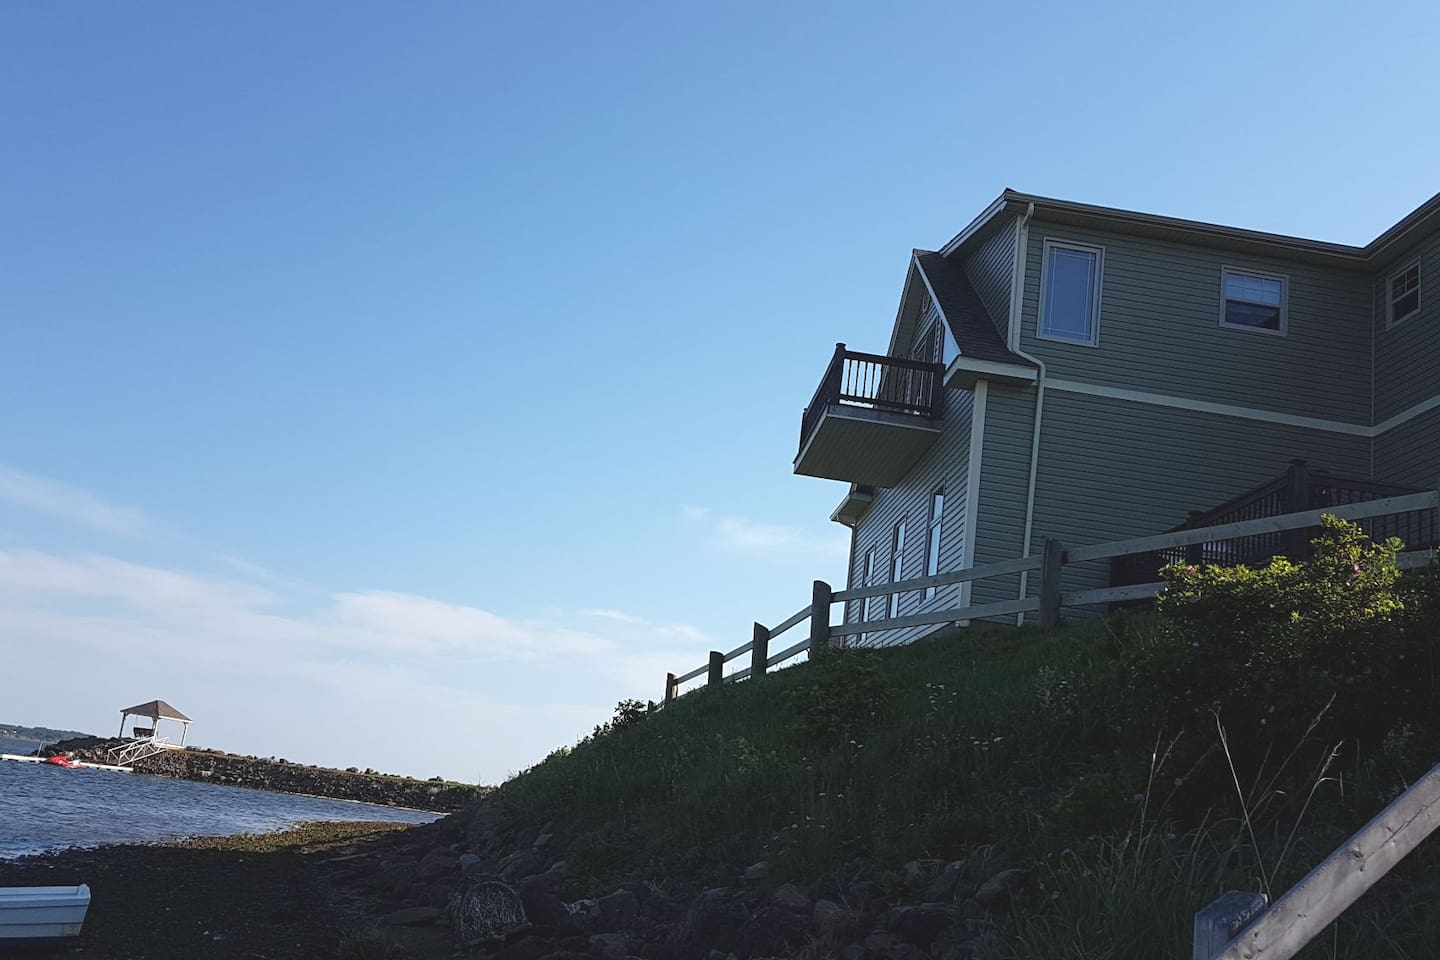 This is a view from the beach, the loft is the top deck